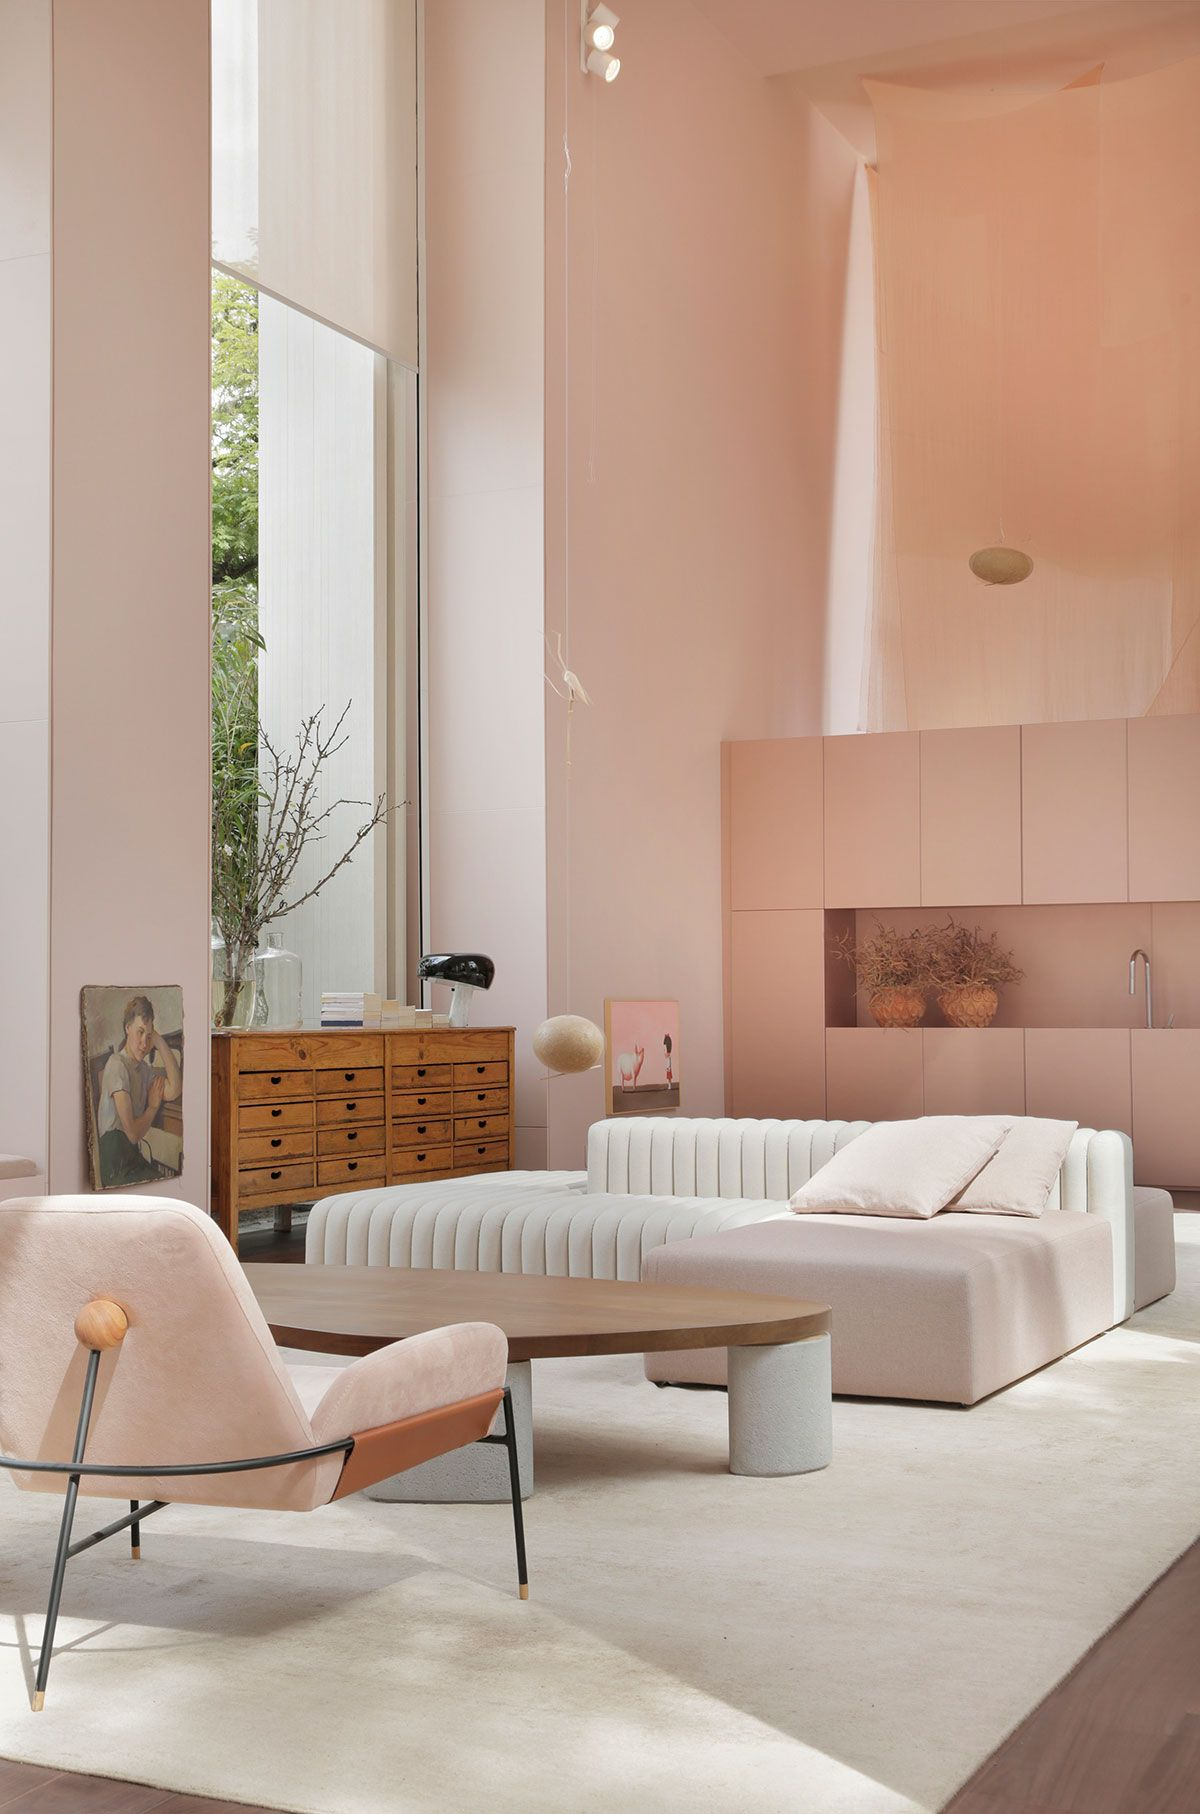 living room, wooden floor, white rug, white wall, pink cabinet, white sofa, wooden coffee table, pink chair